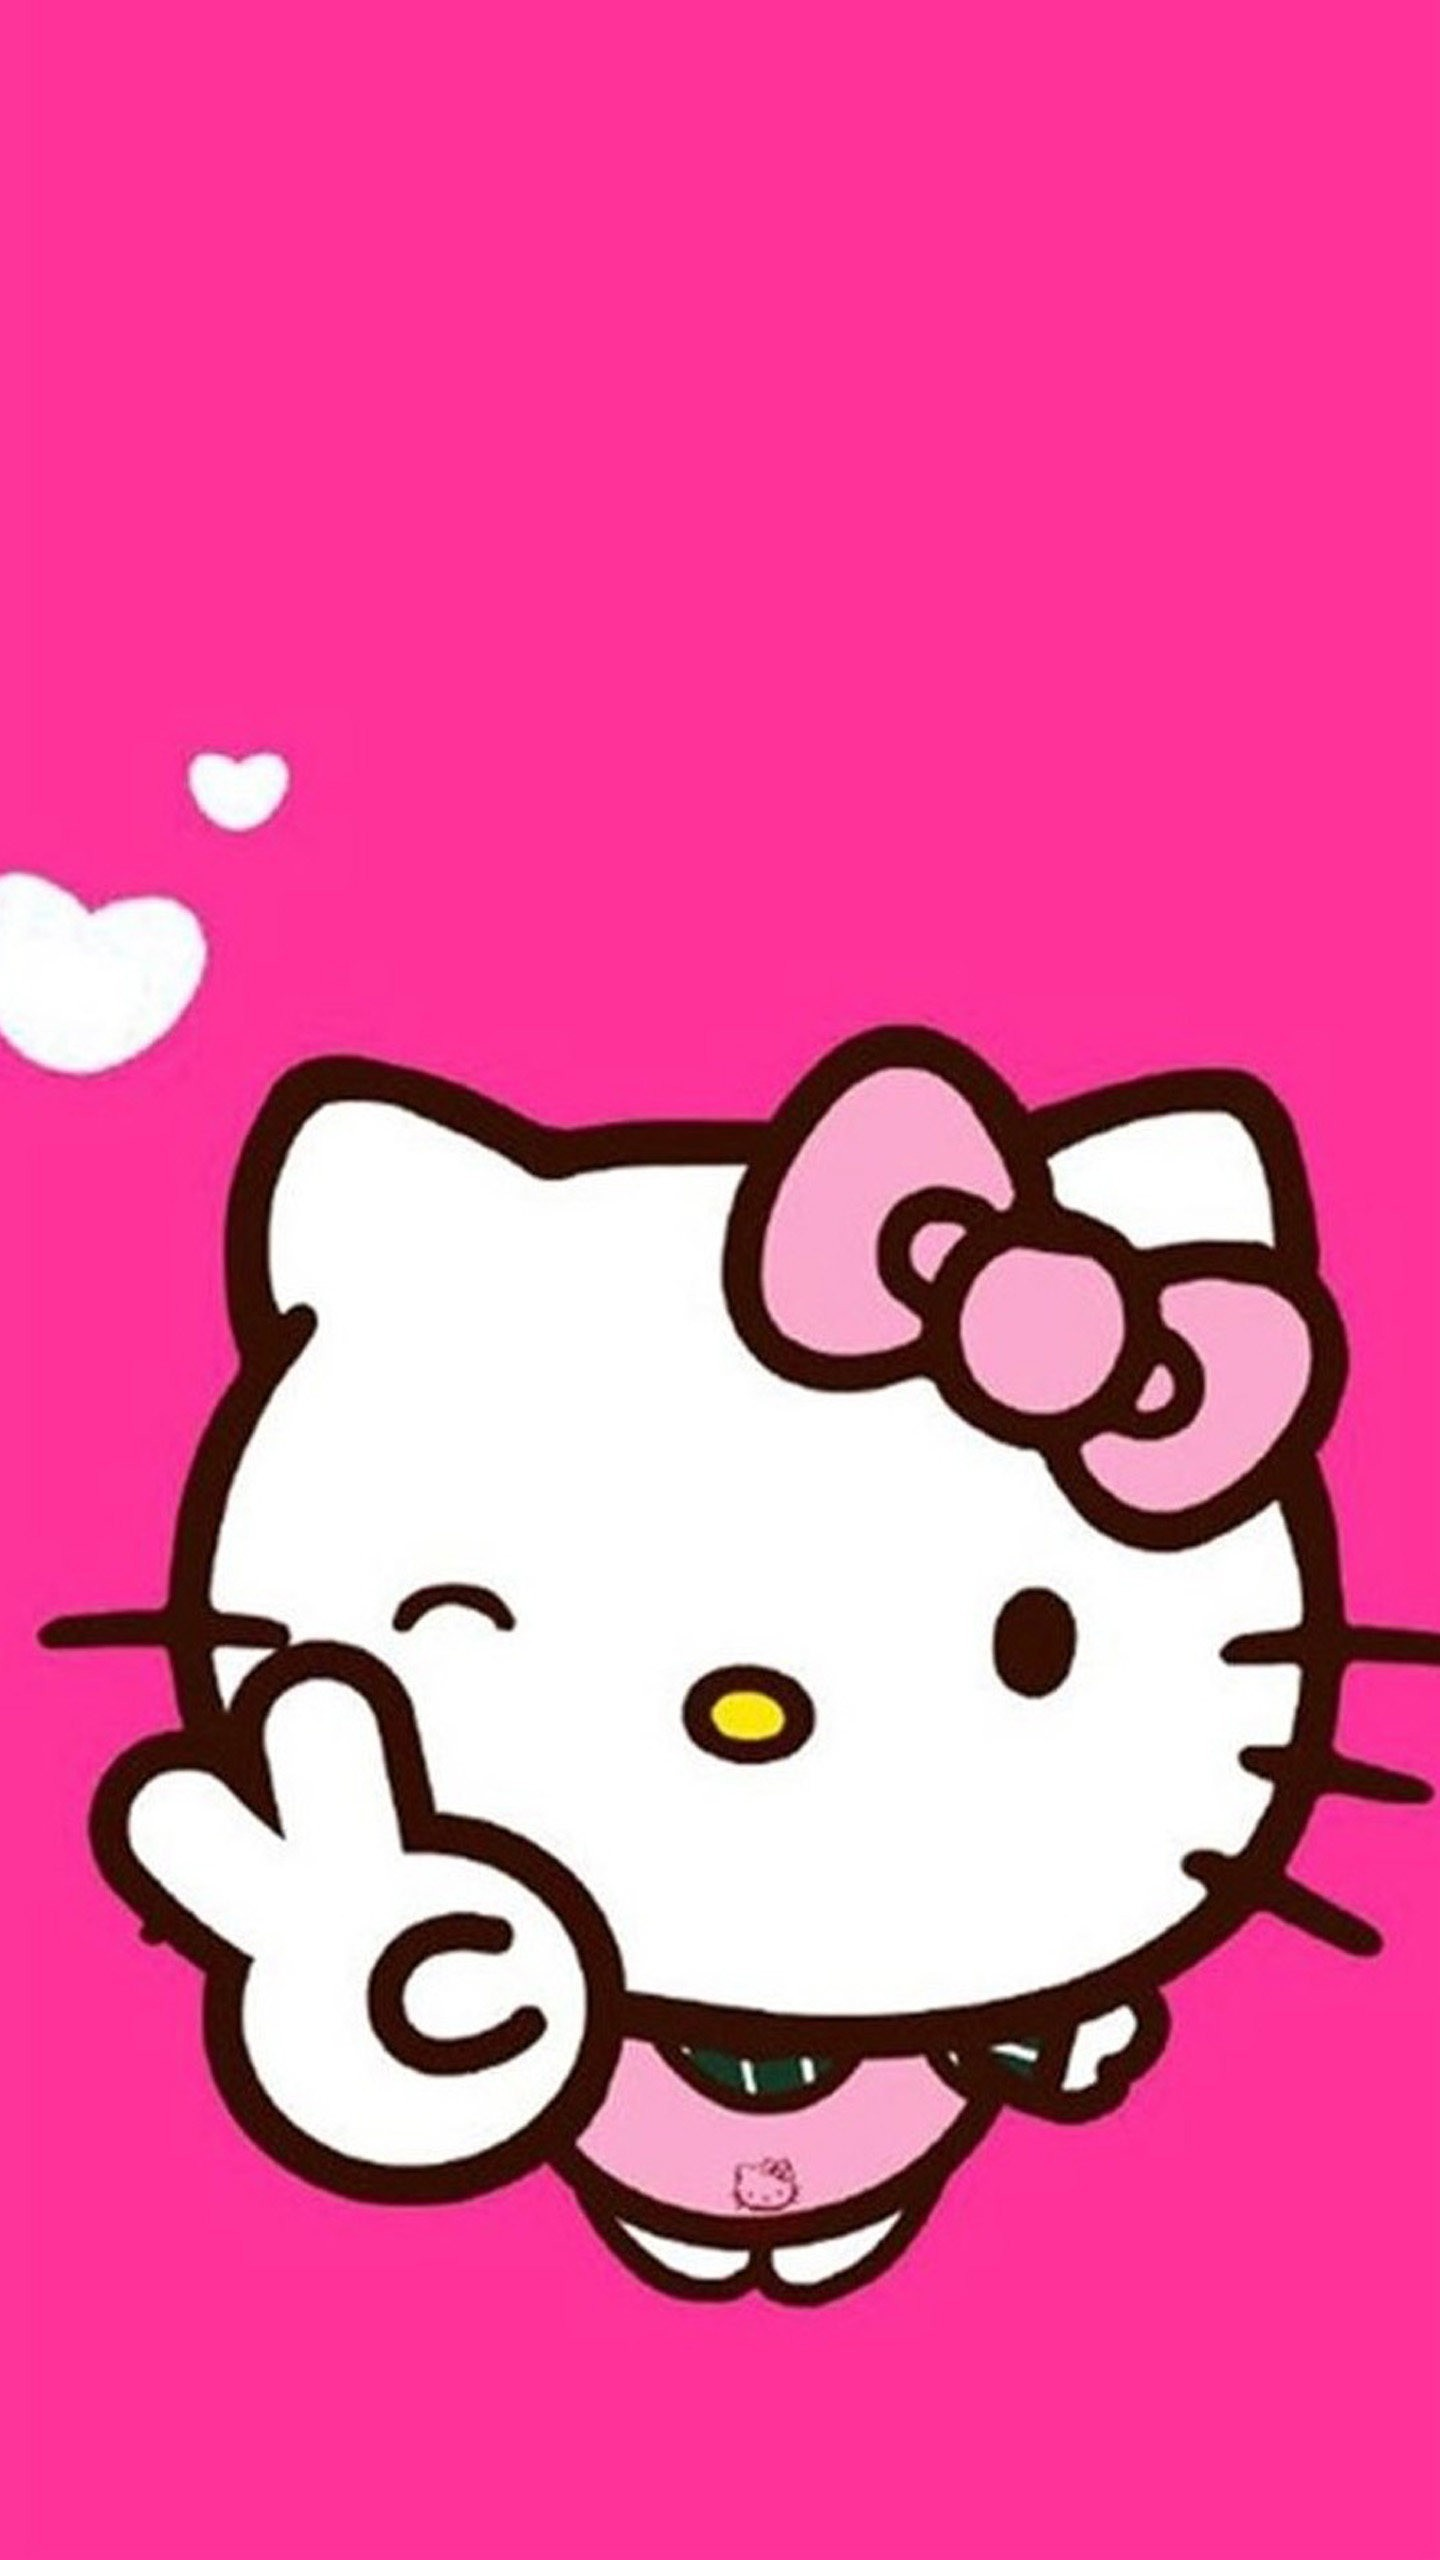 Hello Kitty Küchenmaschine Hello Kitty Screensavers And Wallpapers ·① Wallpapertag